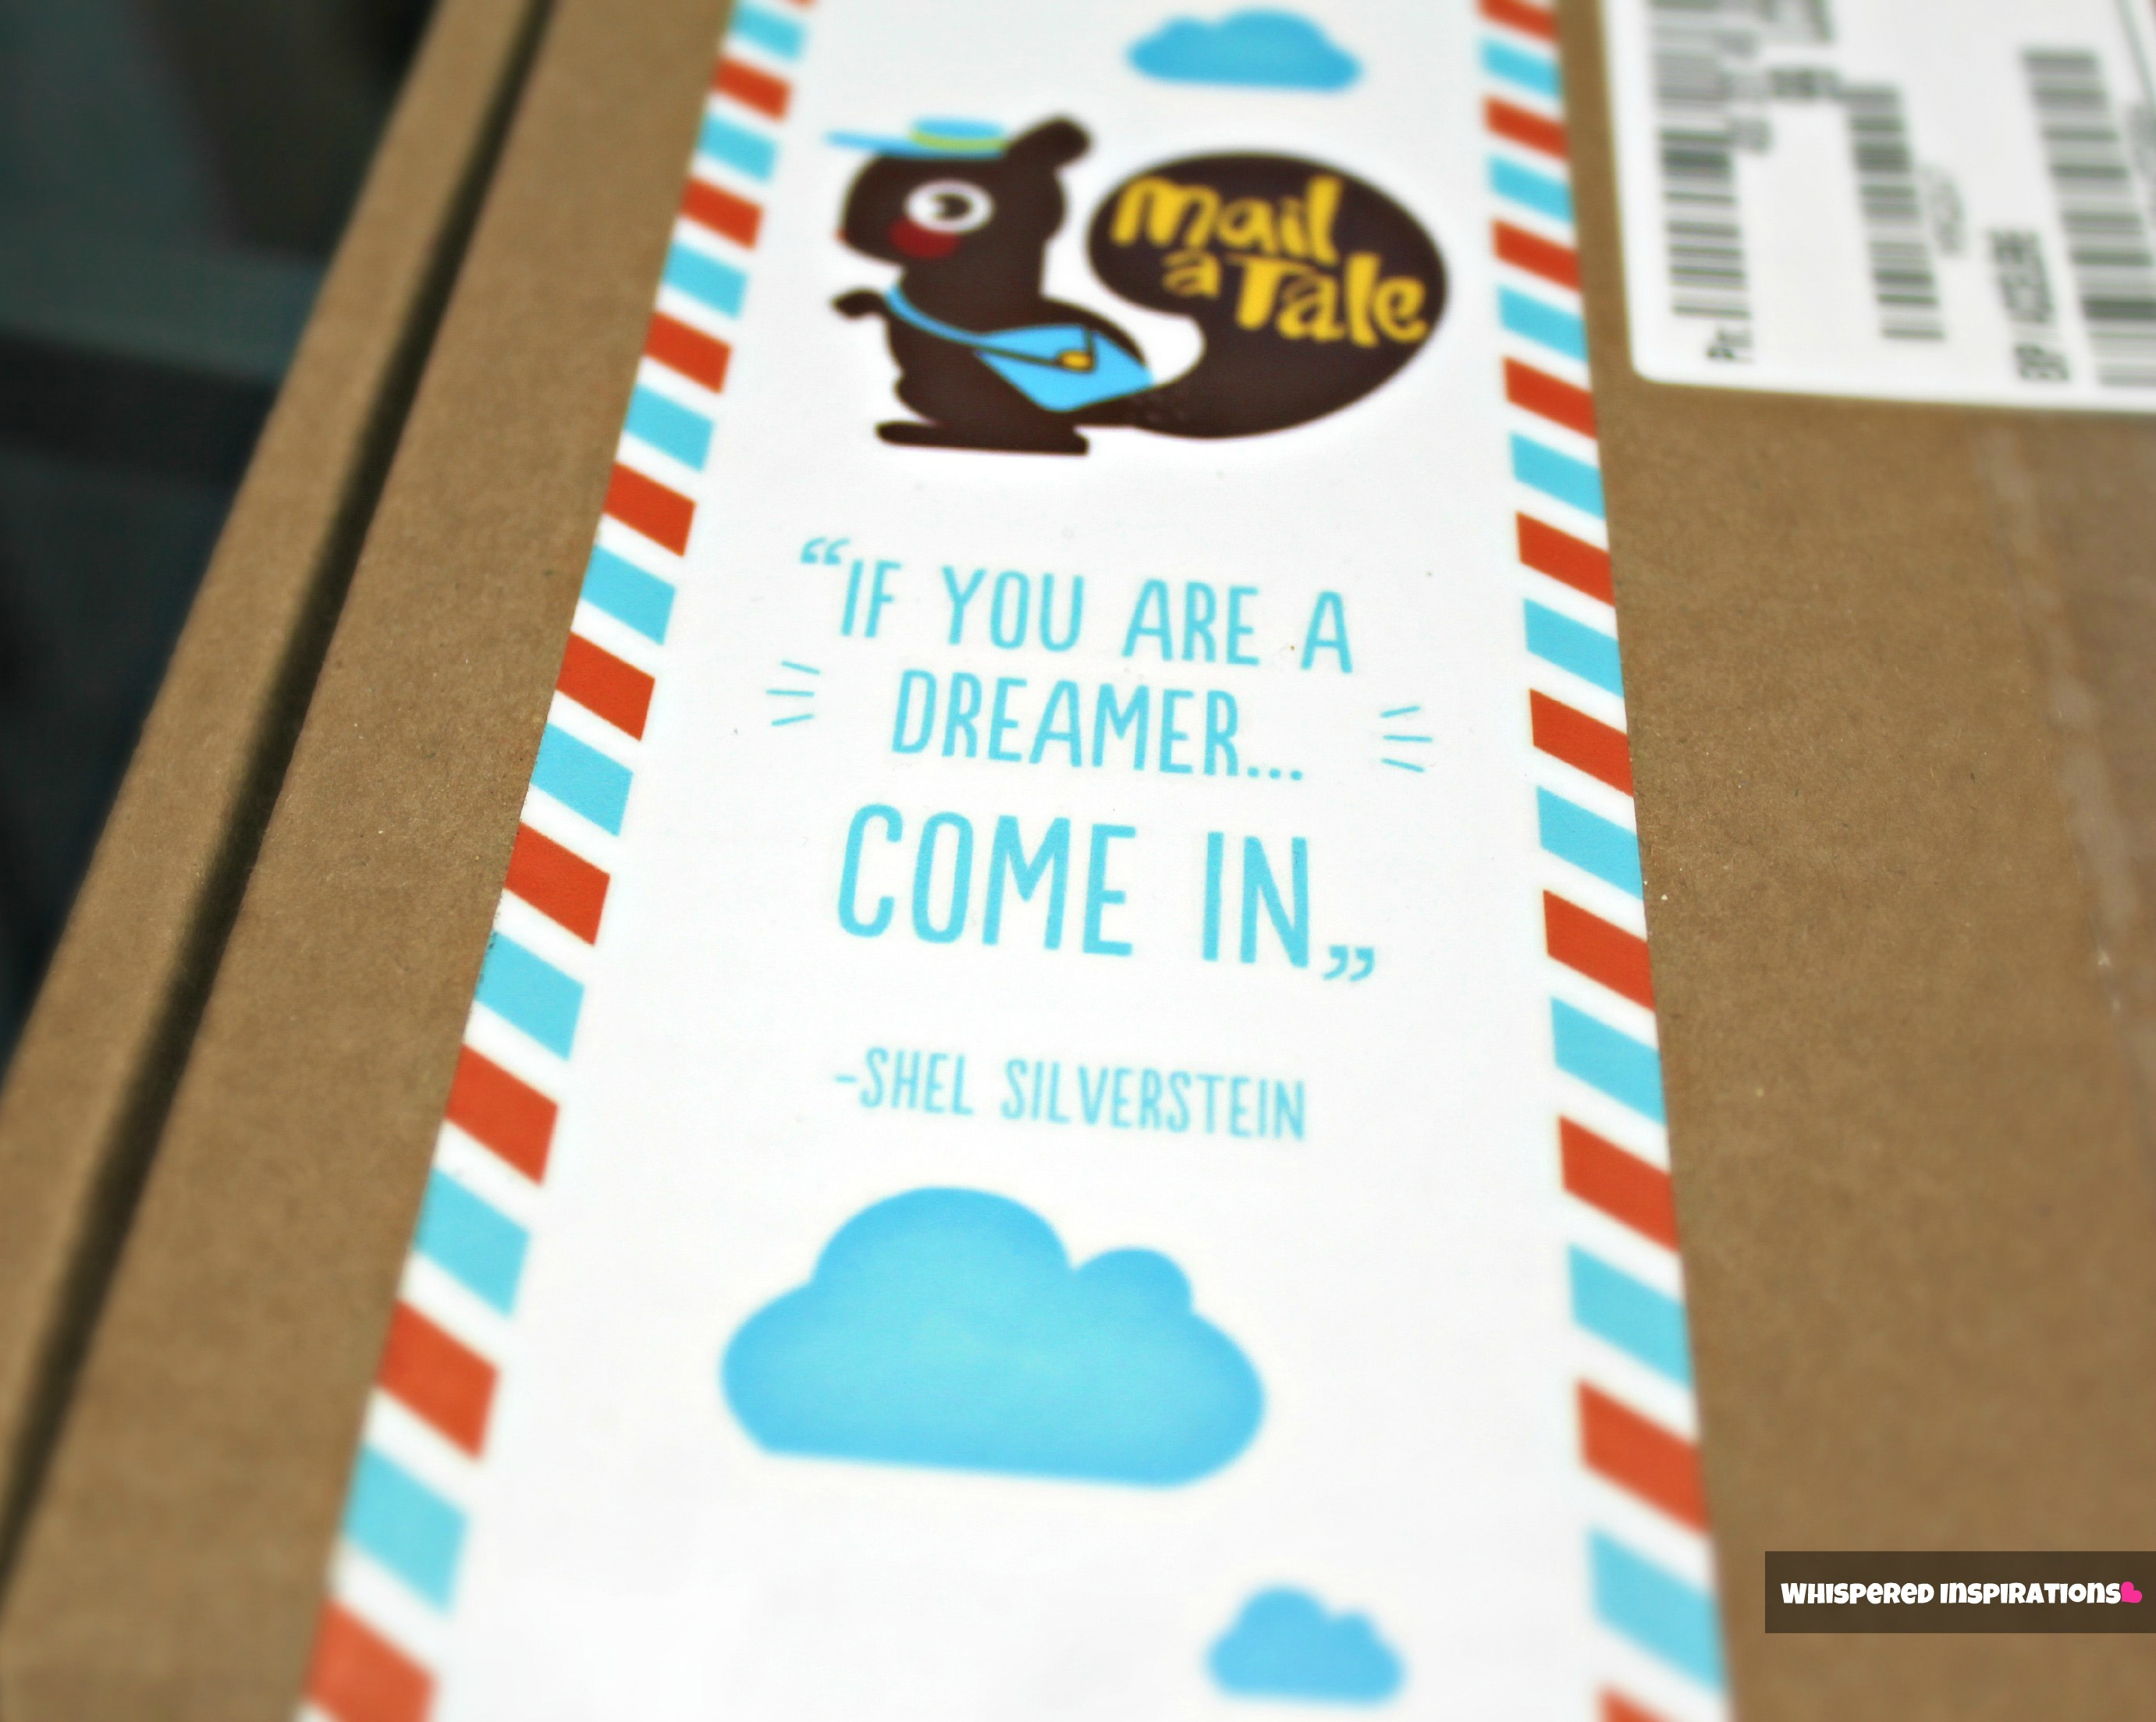 Mailatale Review: Guess Who's Got Mail?